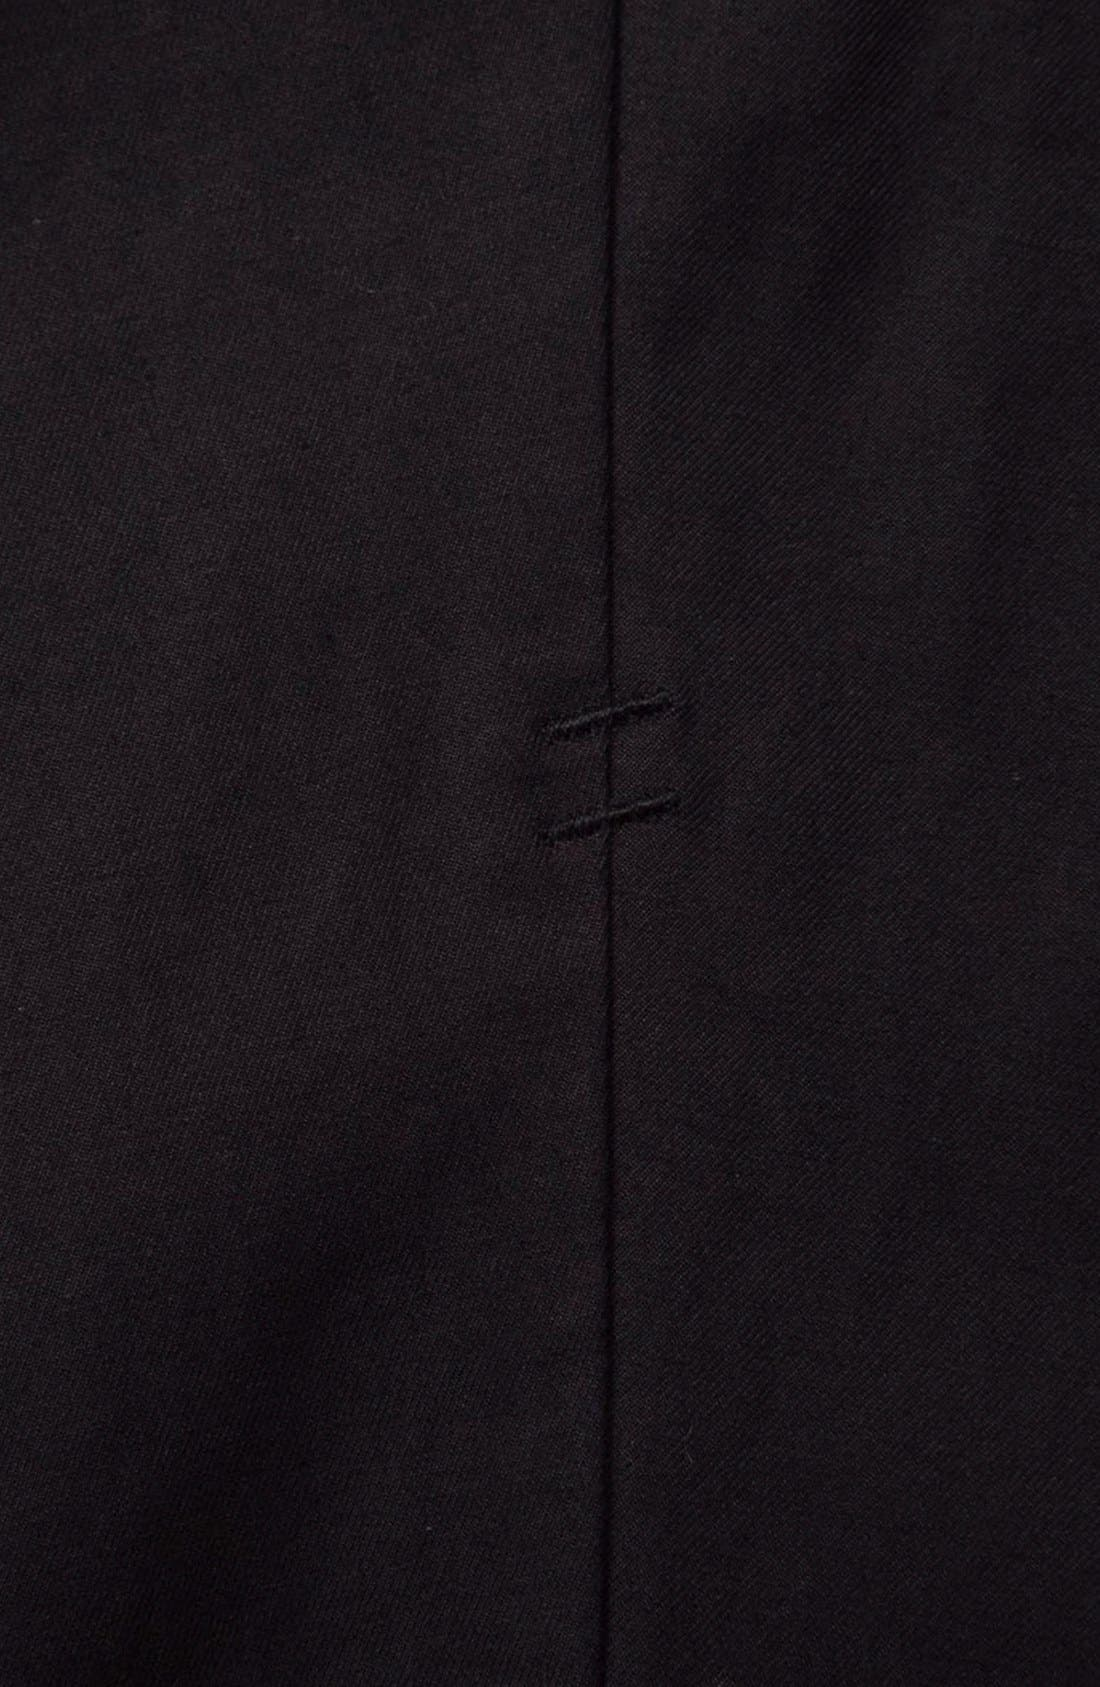 'Arroyo' Crop Stretch Chinos,                             Alternate thumbnail 5, color,                             001